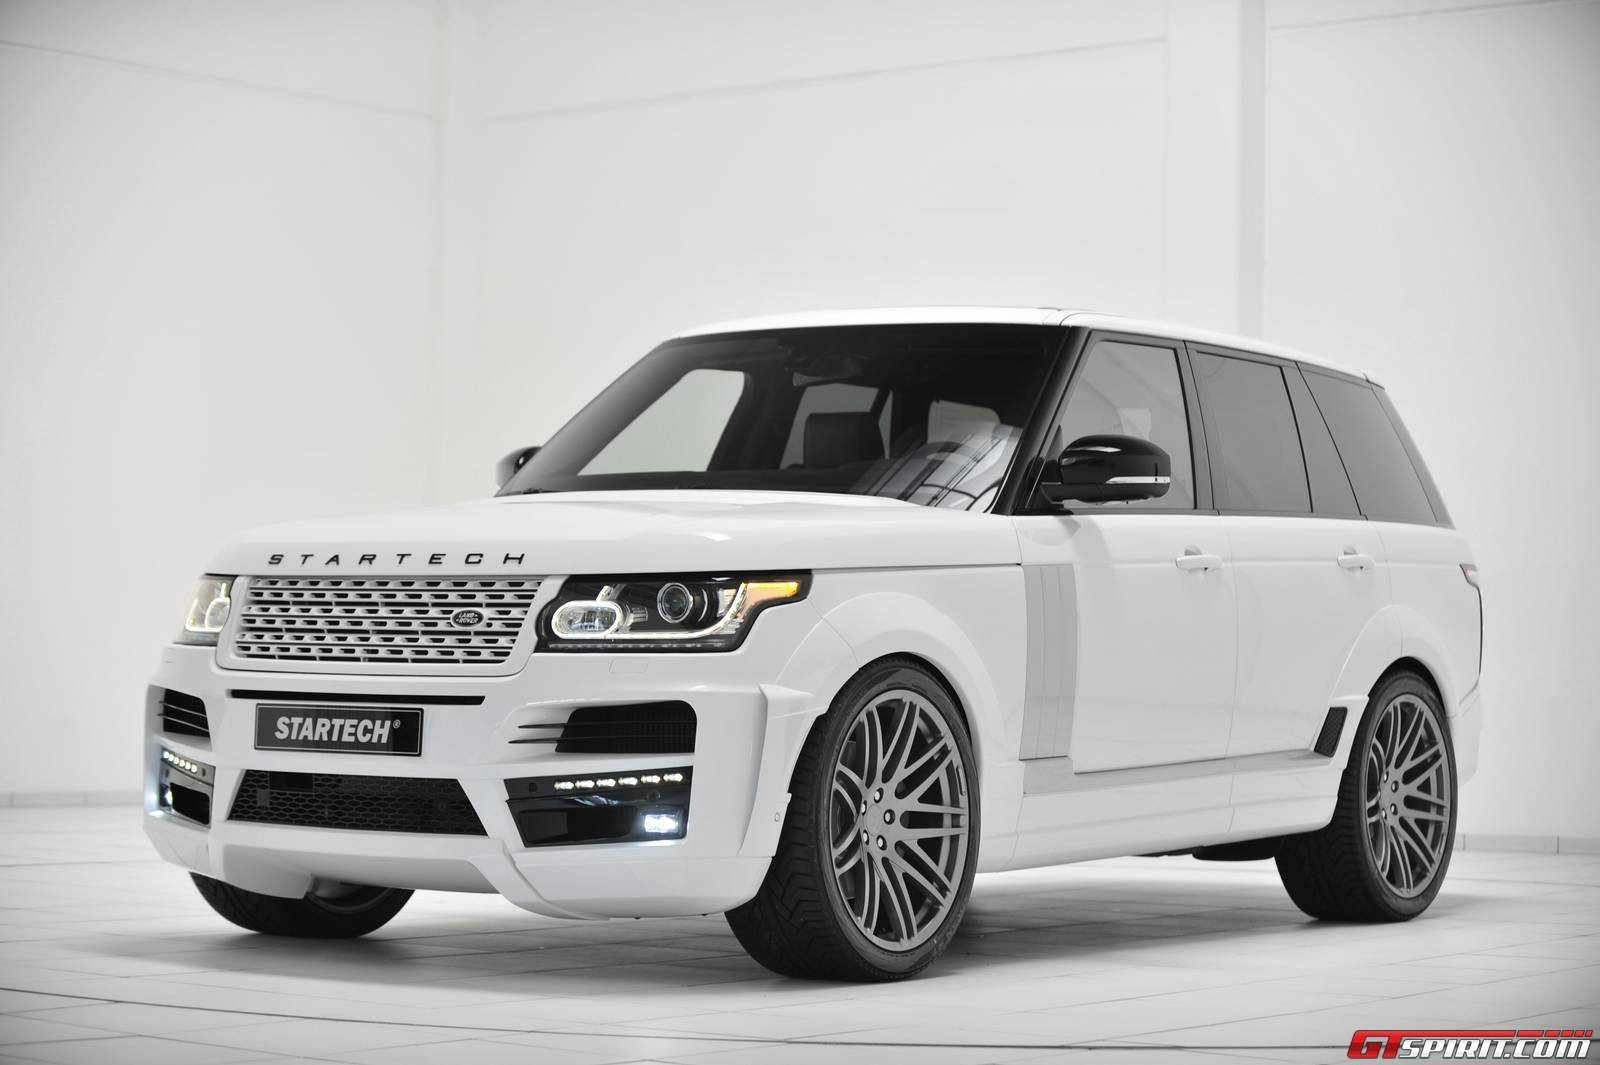 New Official Startech Widebody Range Rover Gtspirit On This Month